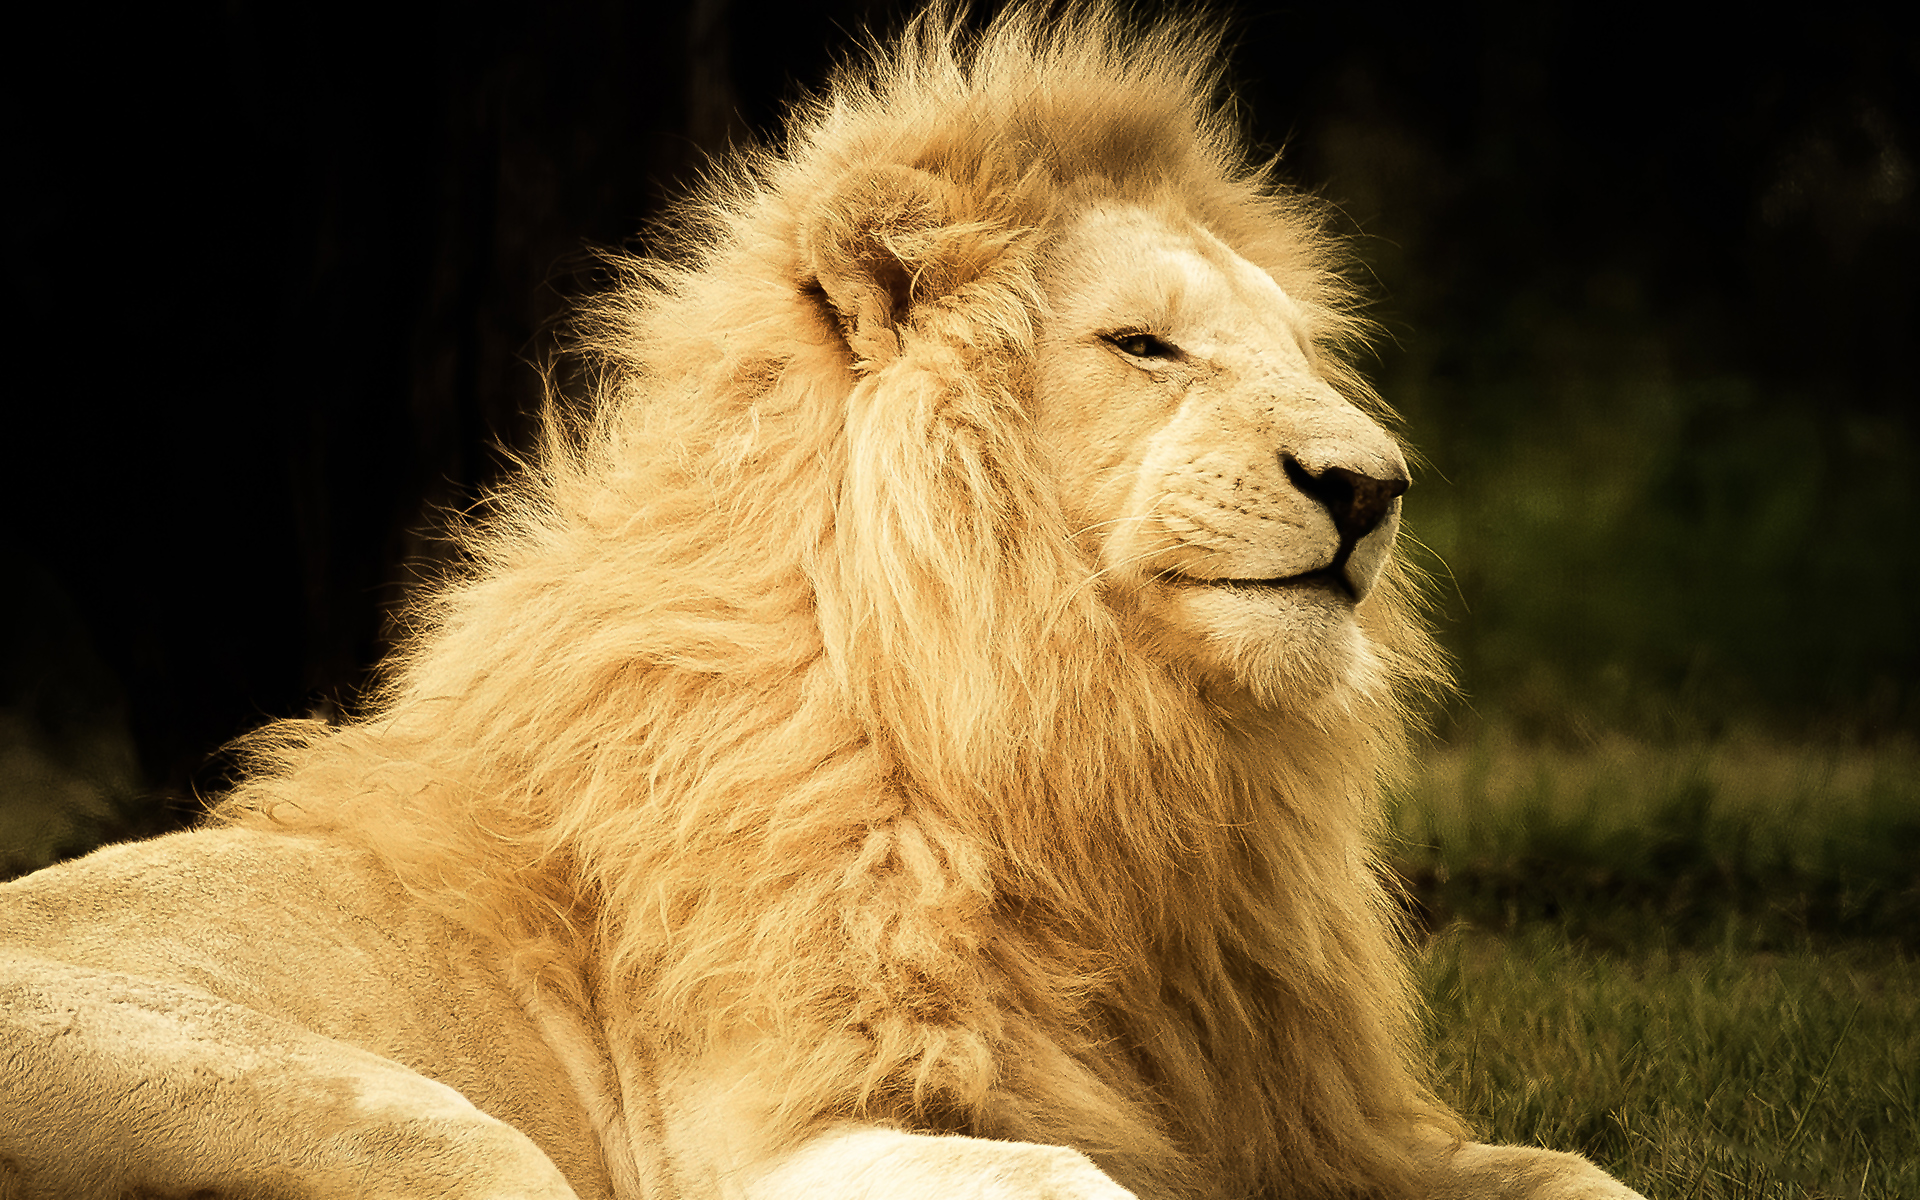 Lion Majestic Animal Hd Desktop Wallpapers 4k Hd